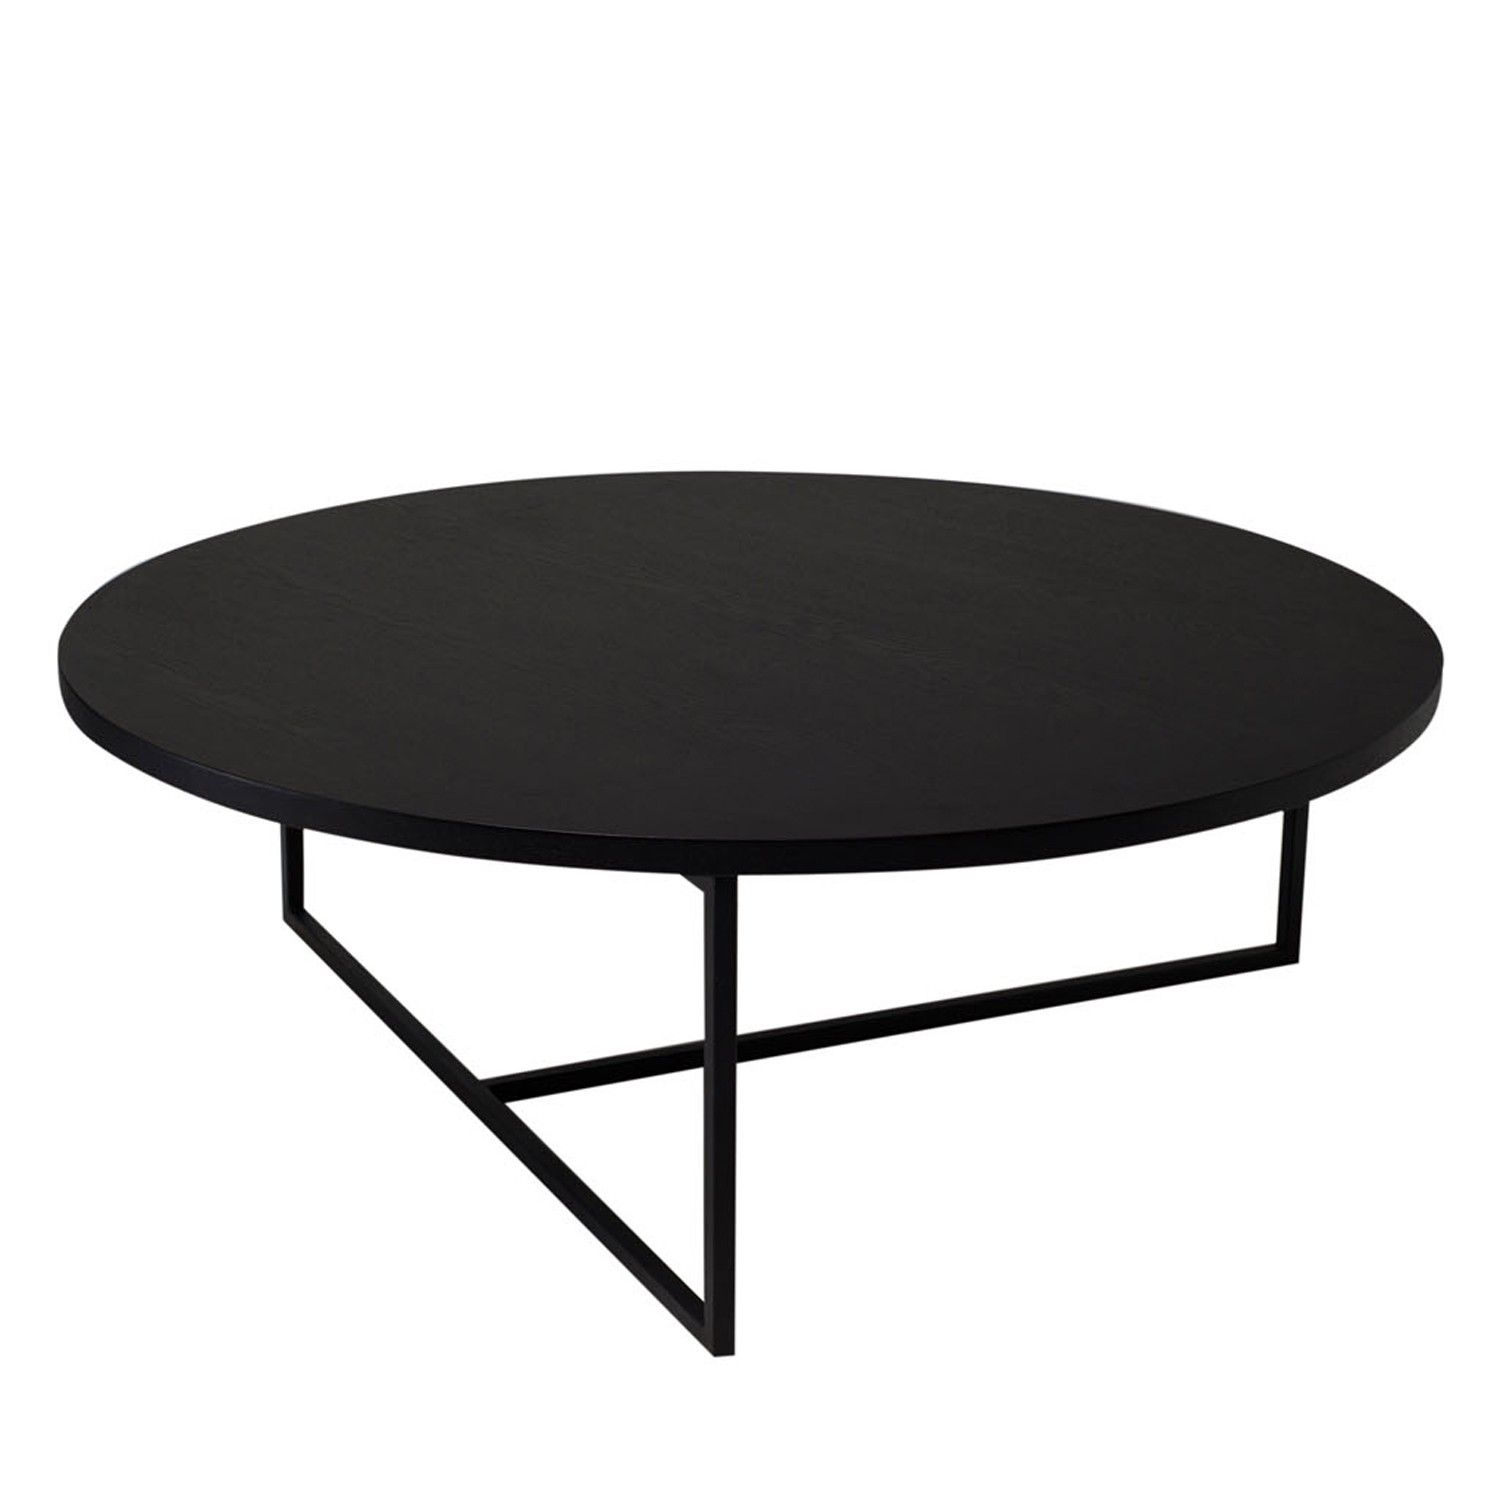 Dolf Round Coffee Table By URBN